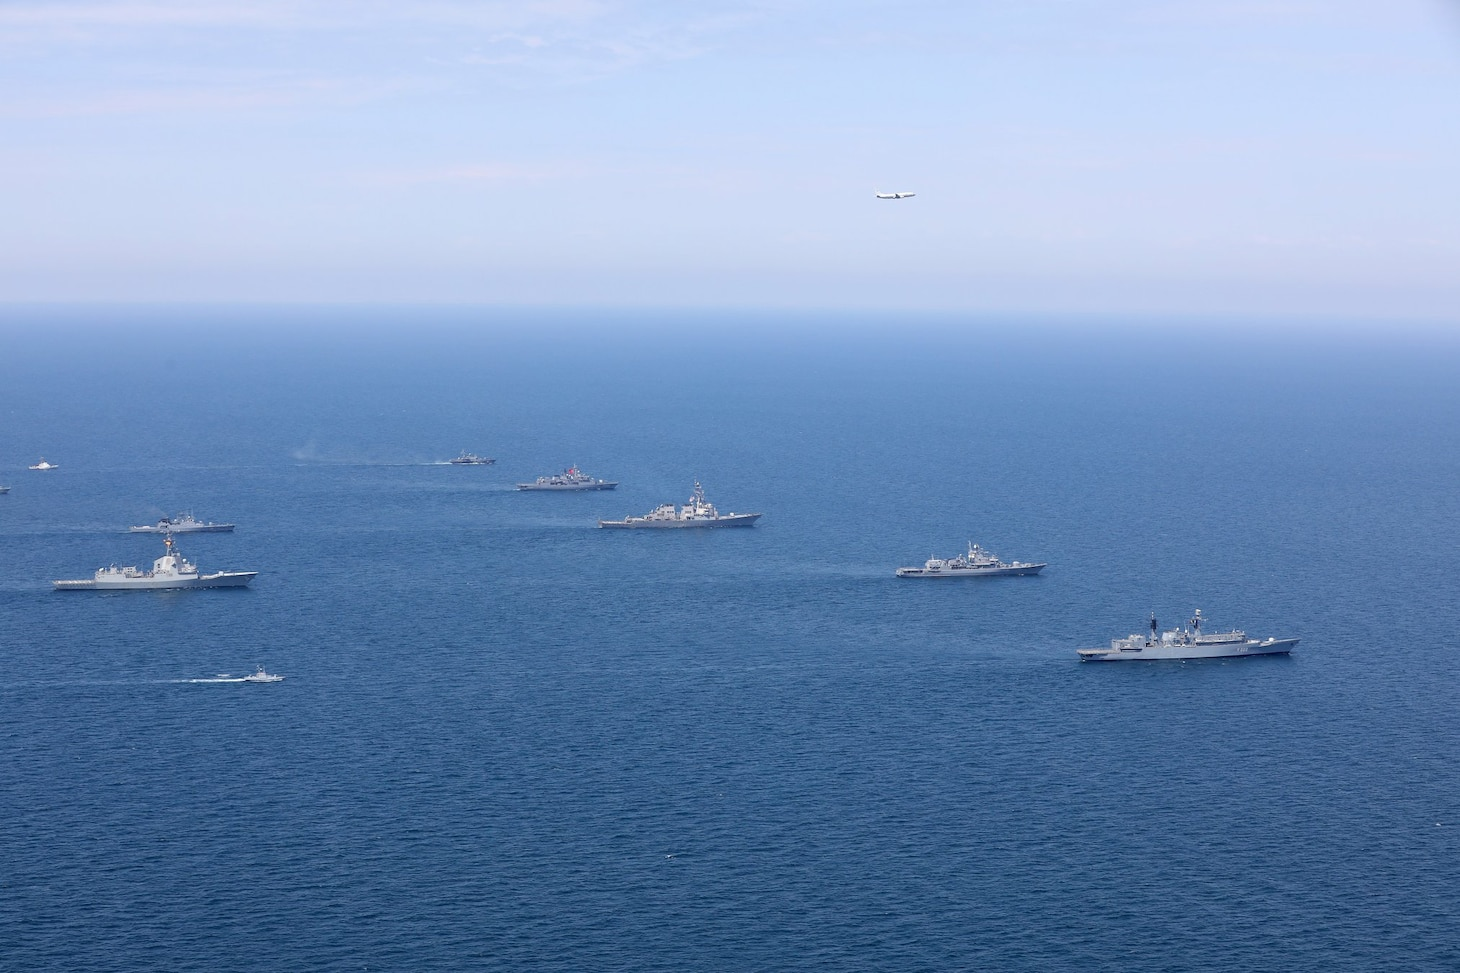 200724-O-NO901-0001 BLACK SEA (July 24, 2020) Ships and aircraft from eight nations sail in formation during a photo exercise while participating in exercise Sea Breeze 2020 in the Black Sea, July 24, 2020. Sea Breeze is an annual U.S.-Ukrainian co-hosted exercise designed to enhance interoperability between participating nations and strengthen regional security. (Photo courtesy of Ukraine Navy)